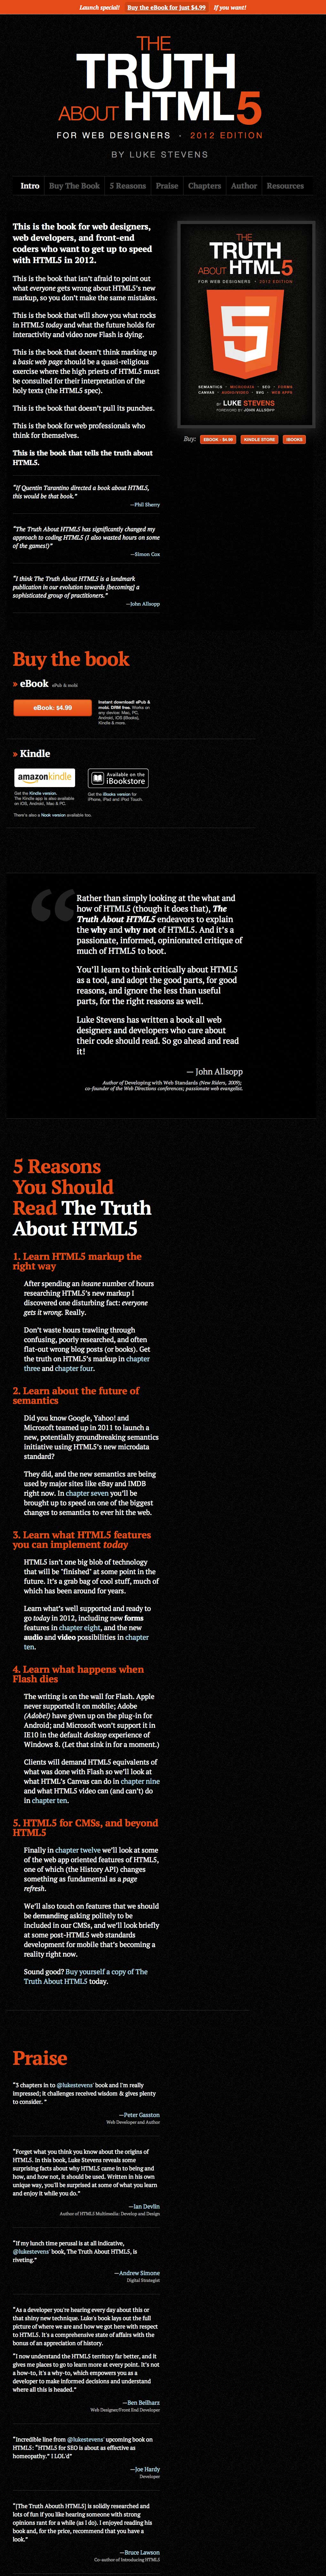 The Truth About HTML5 Website Screenshot